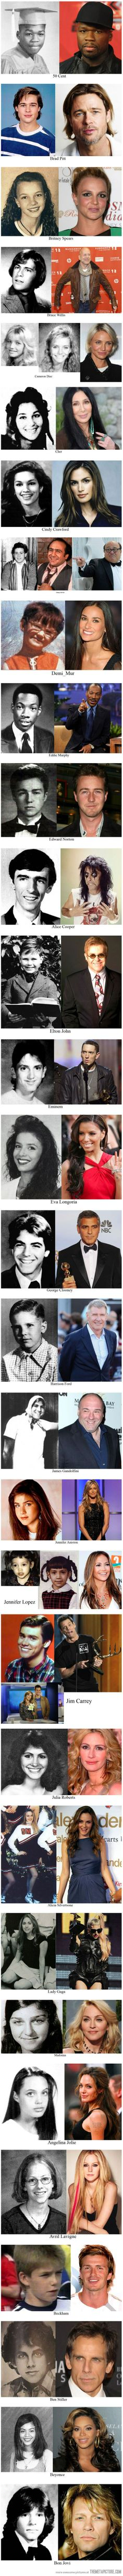 #Celebrities then and now - Just DWL || The Ultimate Trolling